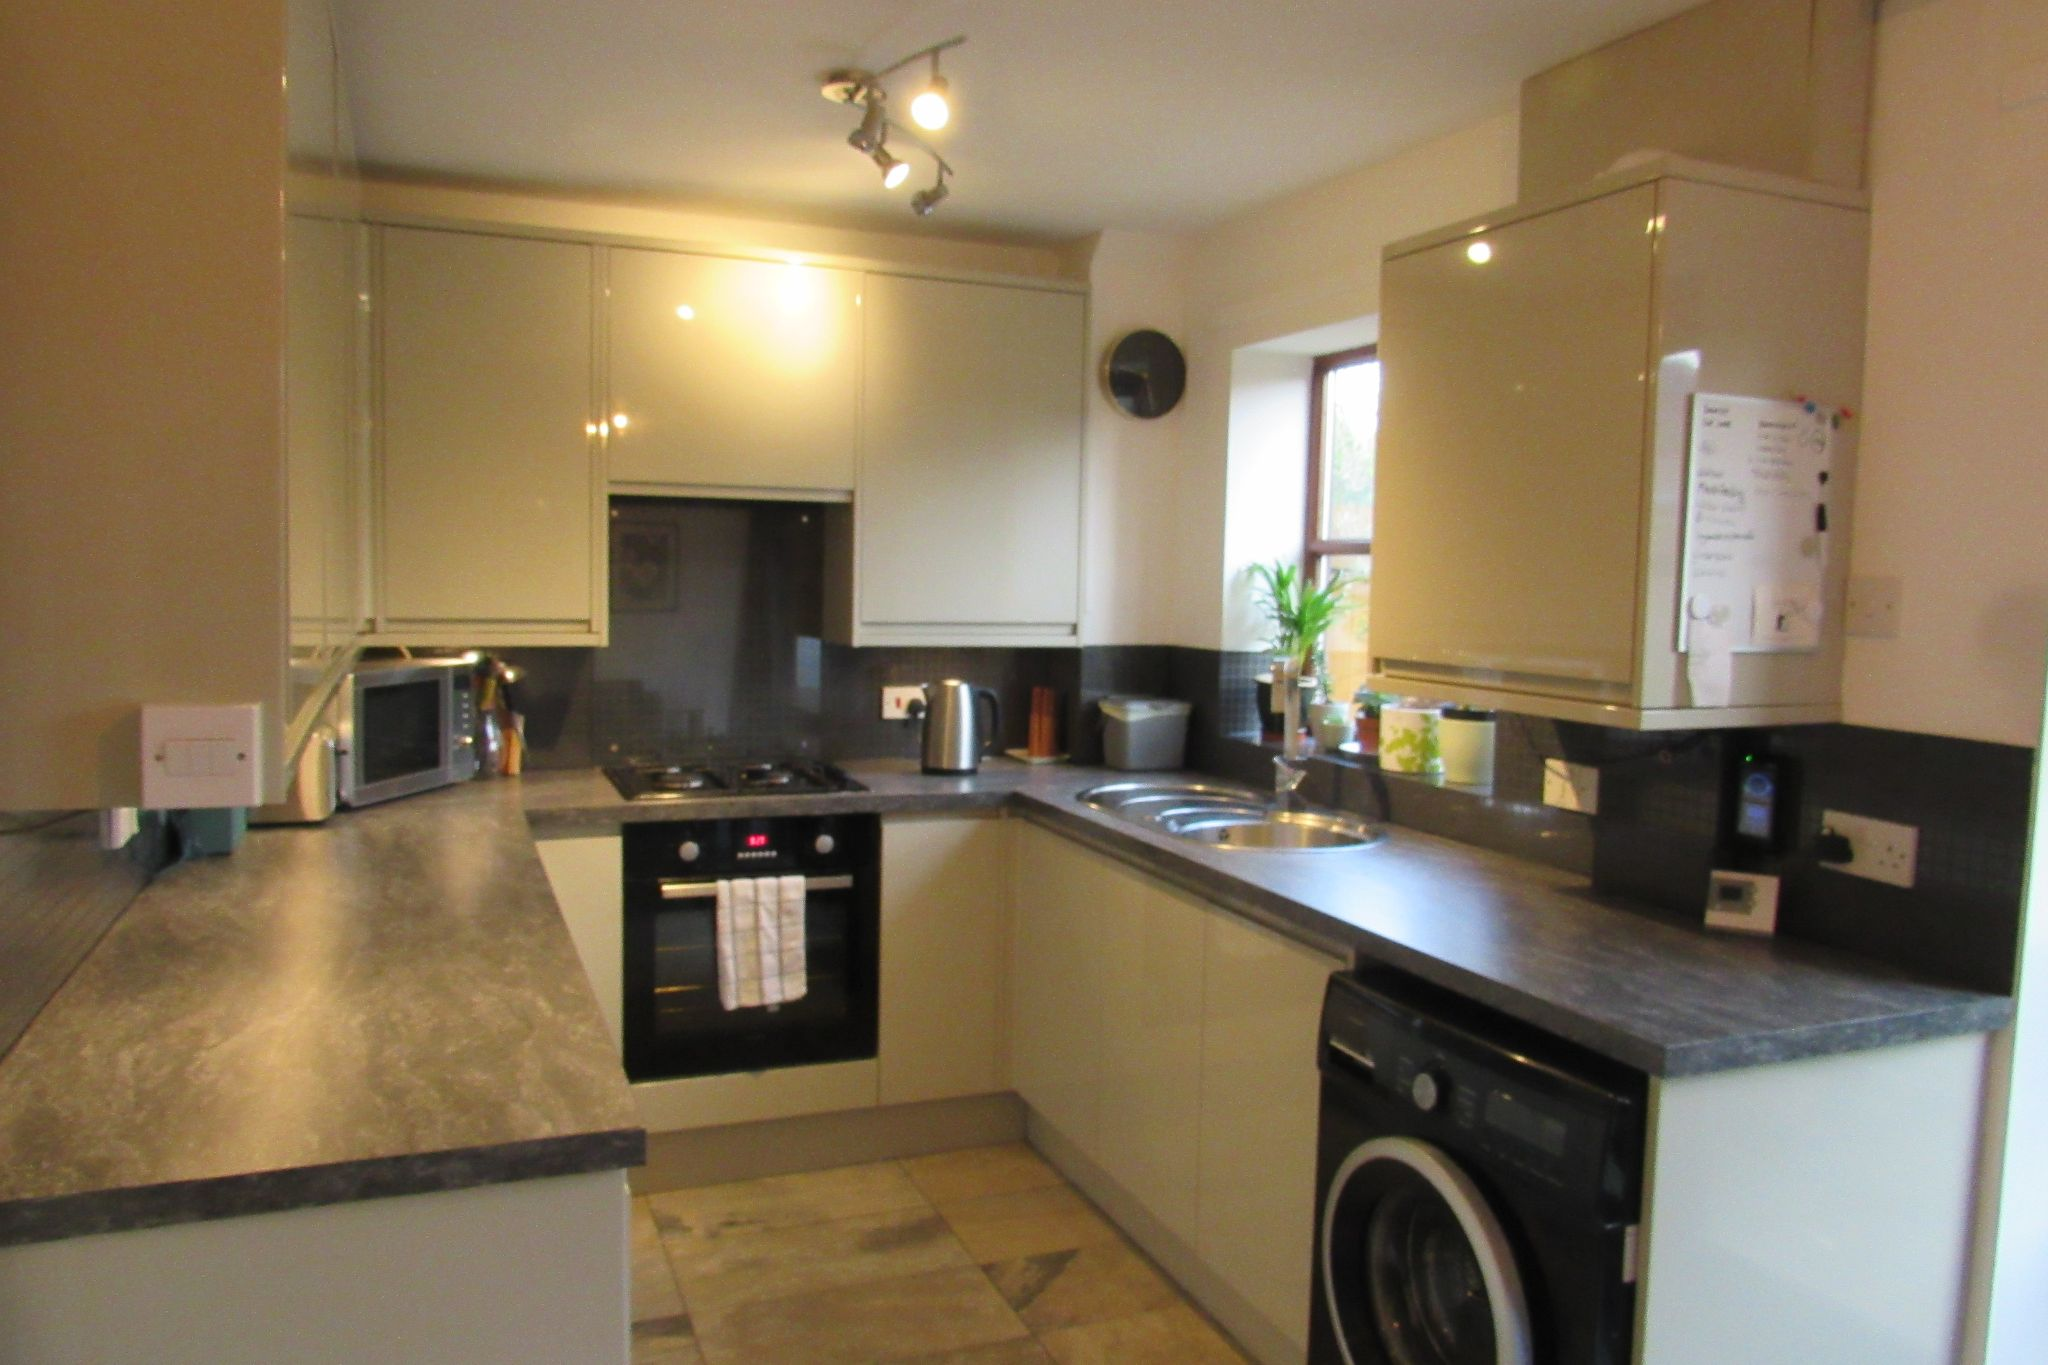 2 bedroom semi-detached house SSTC in Northenden - Photograph 9.